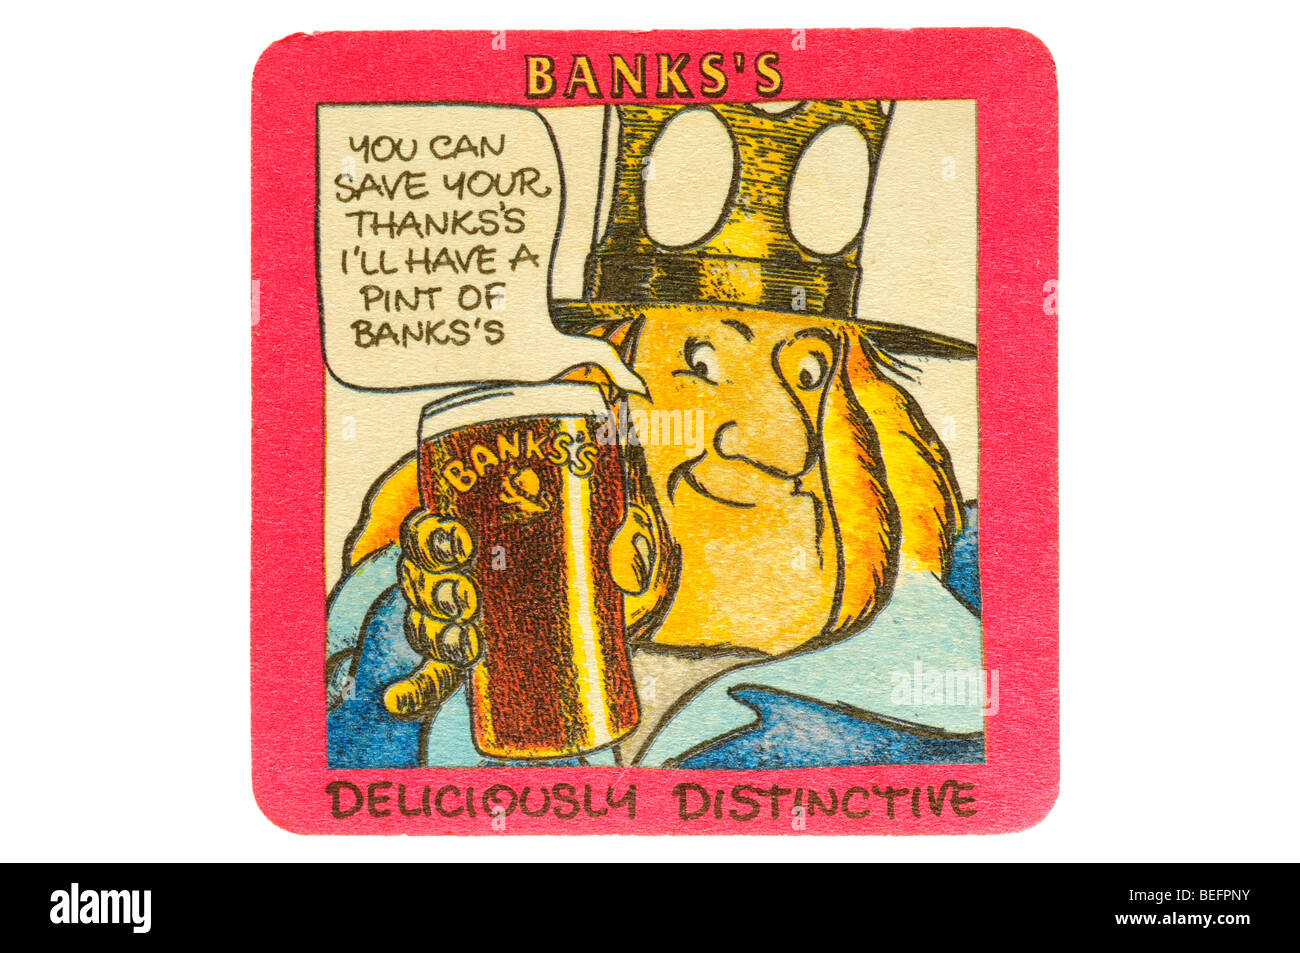 banks's you can save the thanks ill have a pint of banks deliciously distinctive - Stock Image